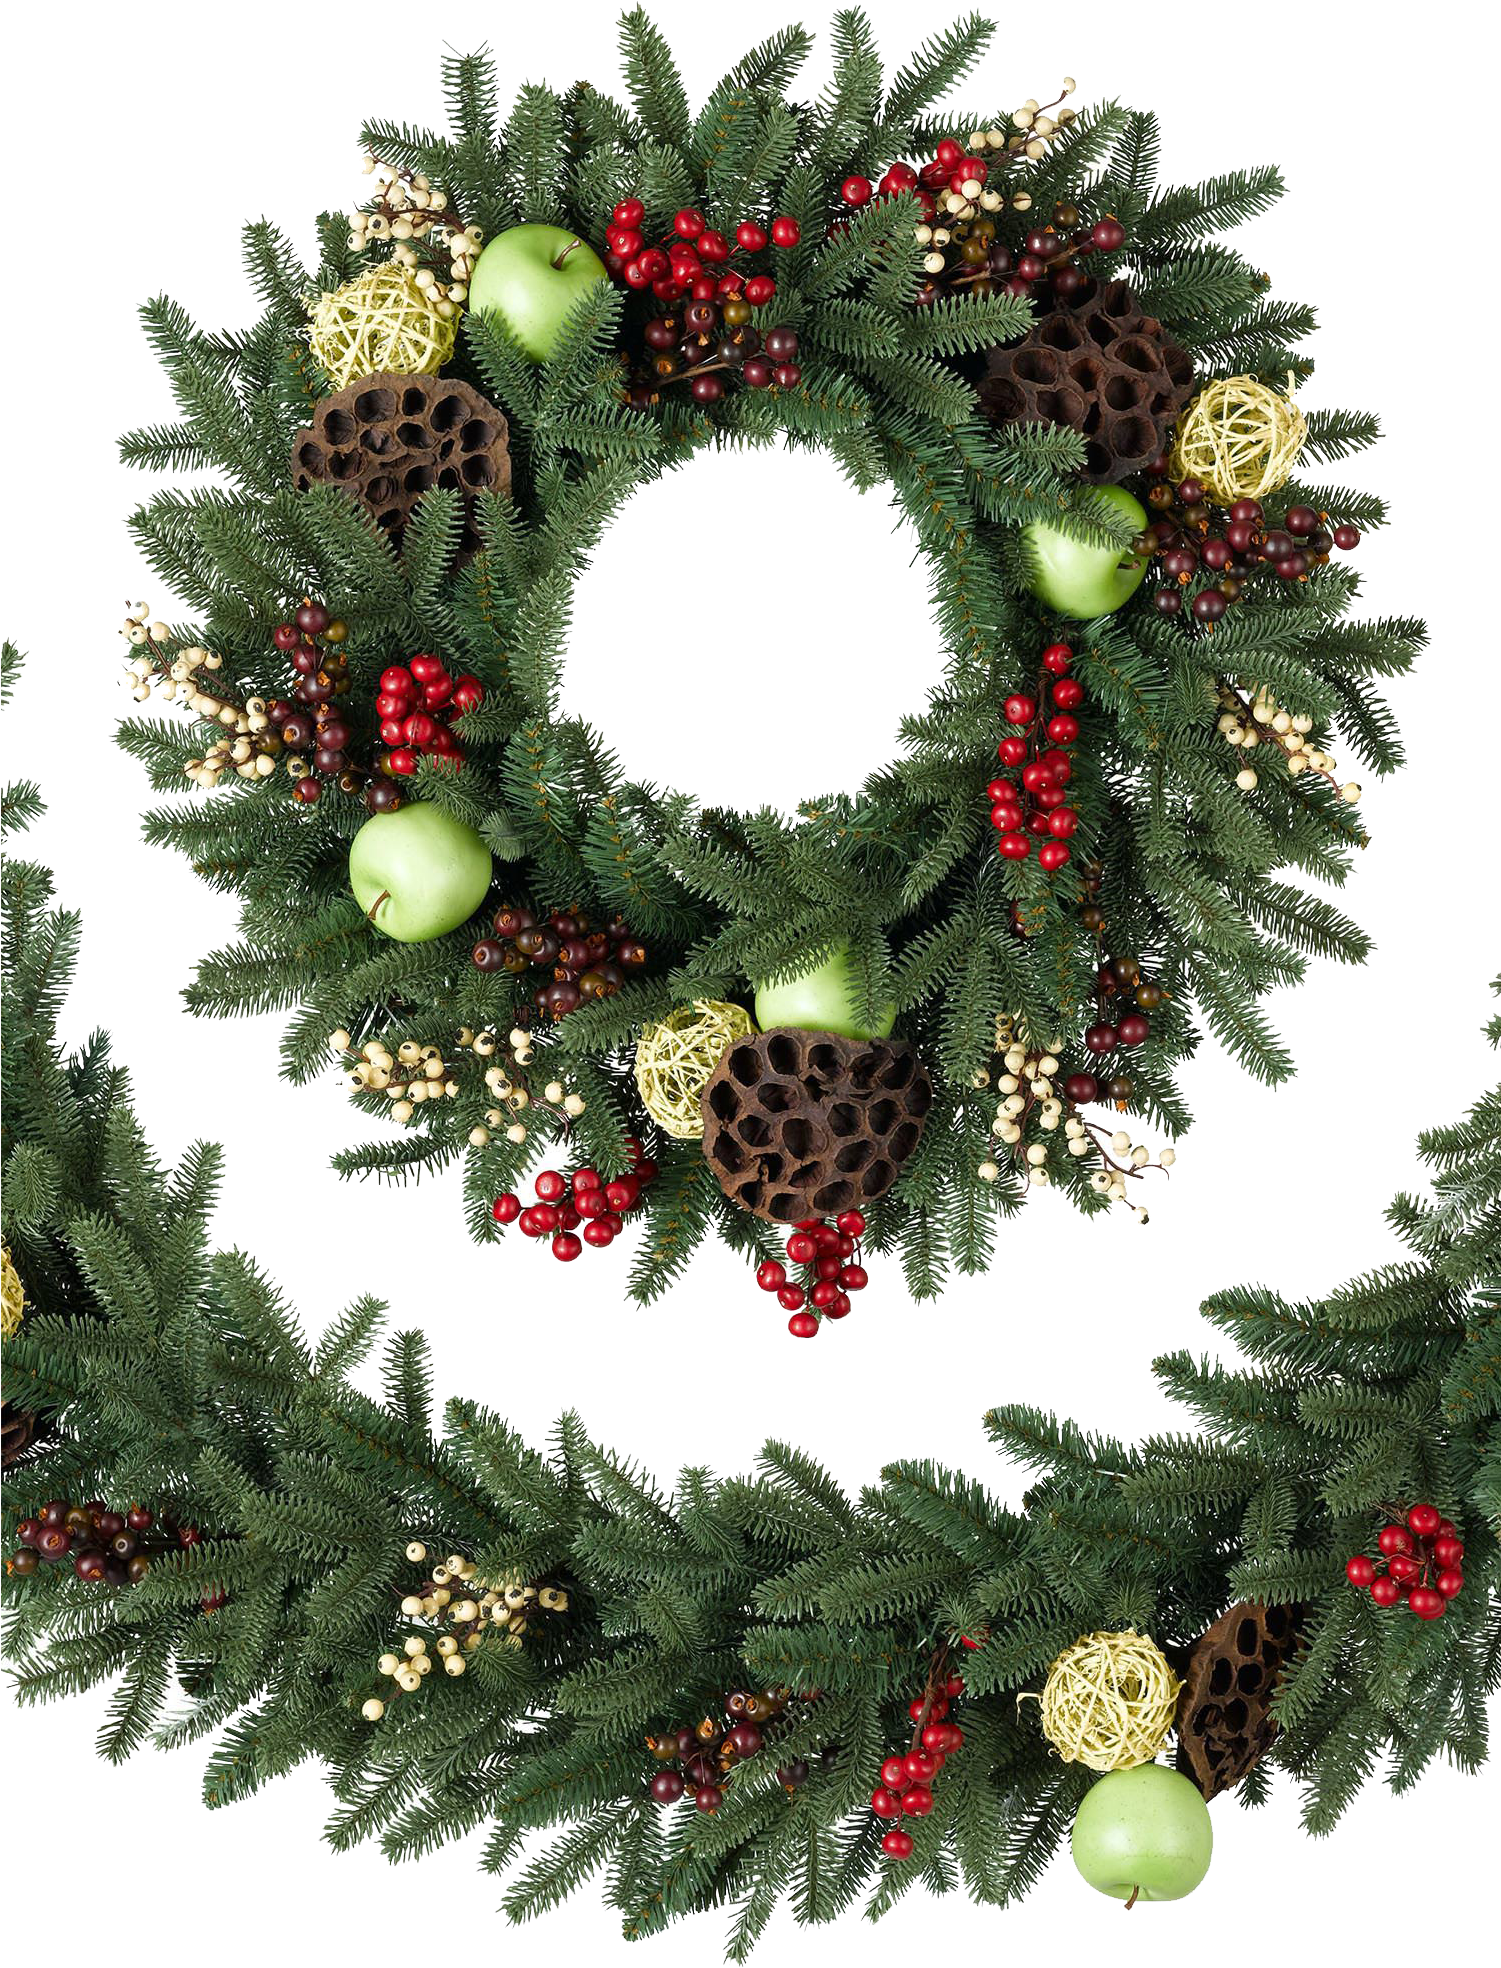 Christmas Wreath Transparent Png Png Download - Christmas Wreath Transparent Background (1500x1978), Png Download